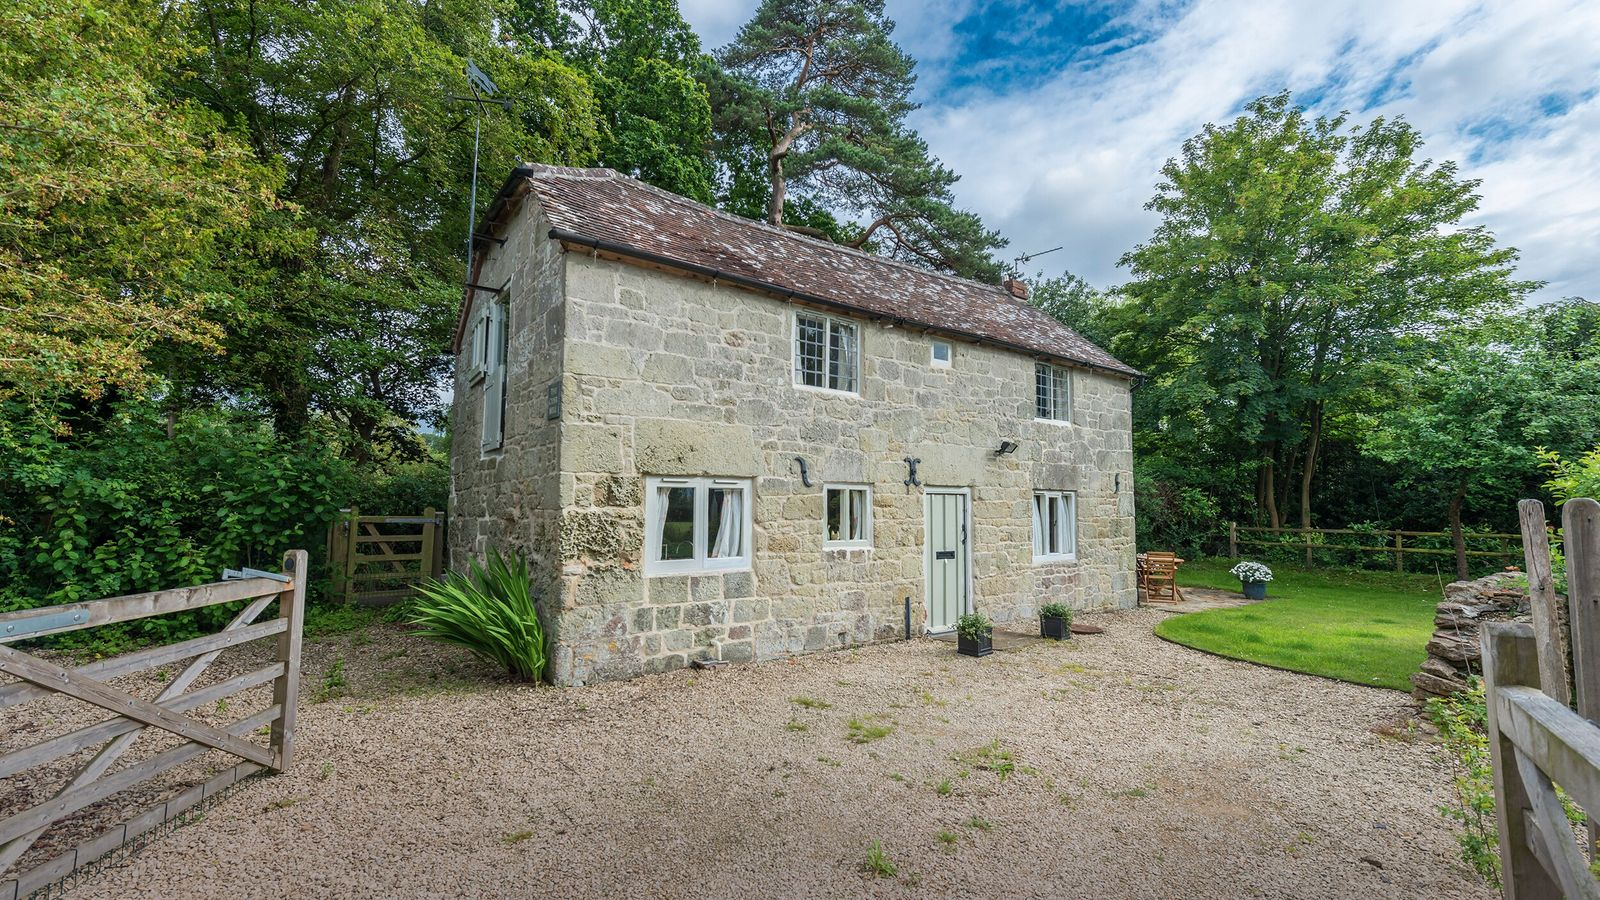 The exterior of Cider Mill cottage, near Shaftesbury.